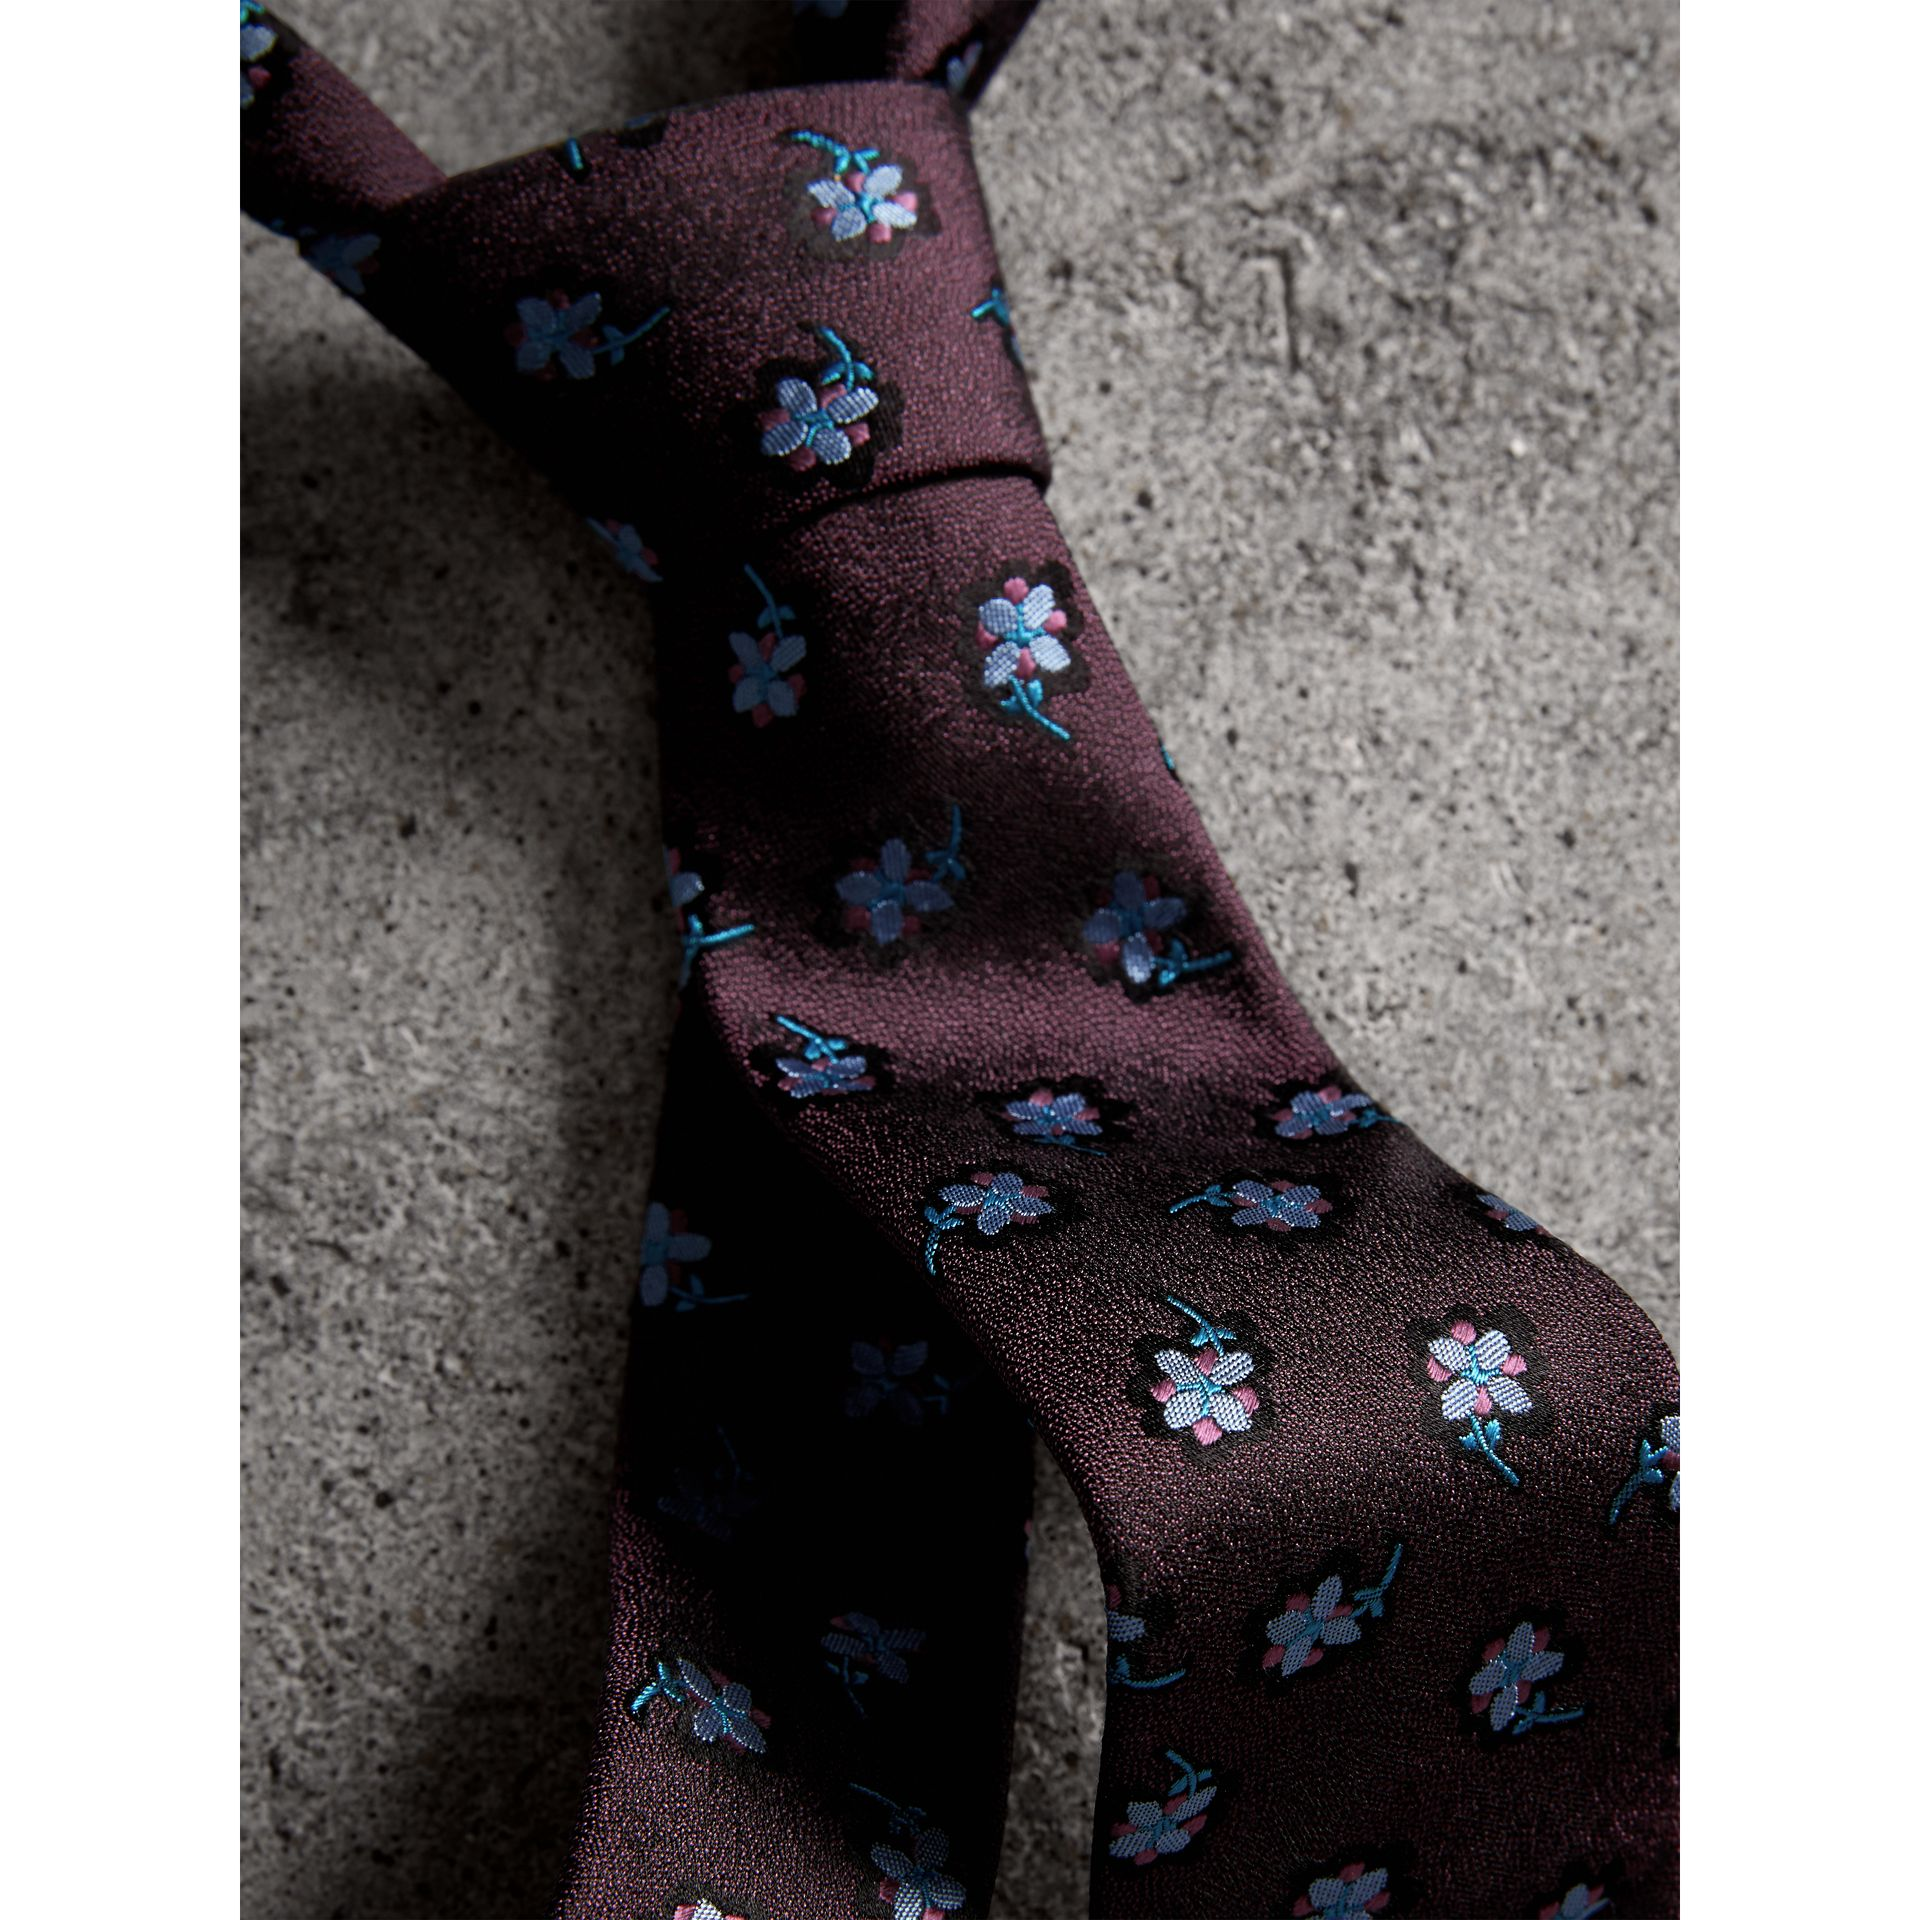 Slim Cut Floral Silk Brocade Tie in Purple Grape - Men | Burberry - gallery image 1